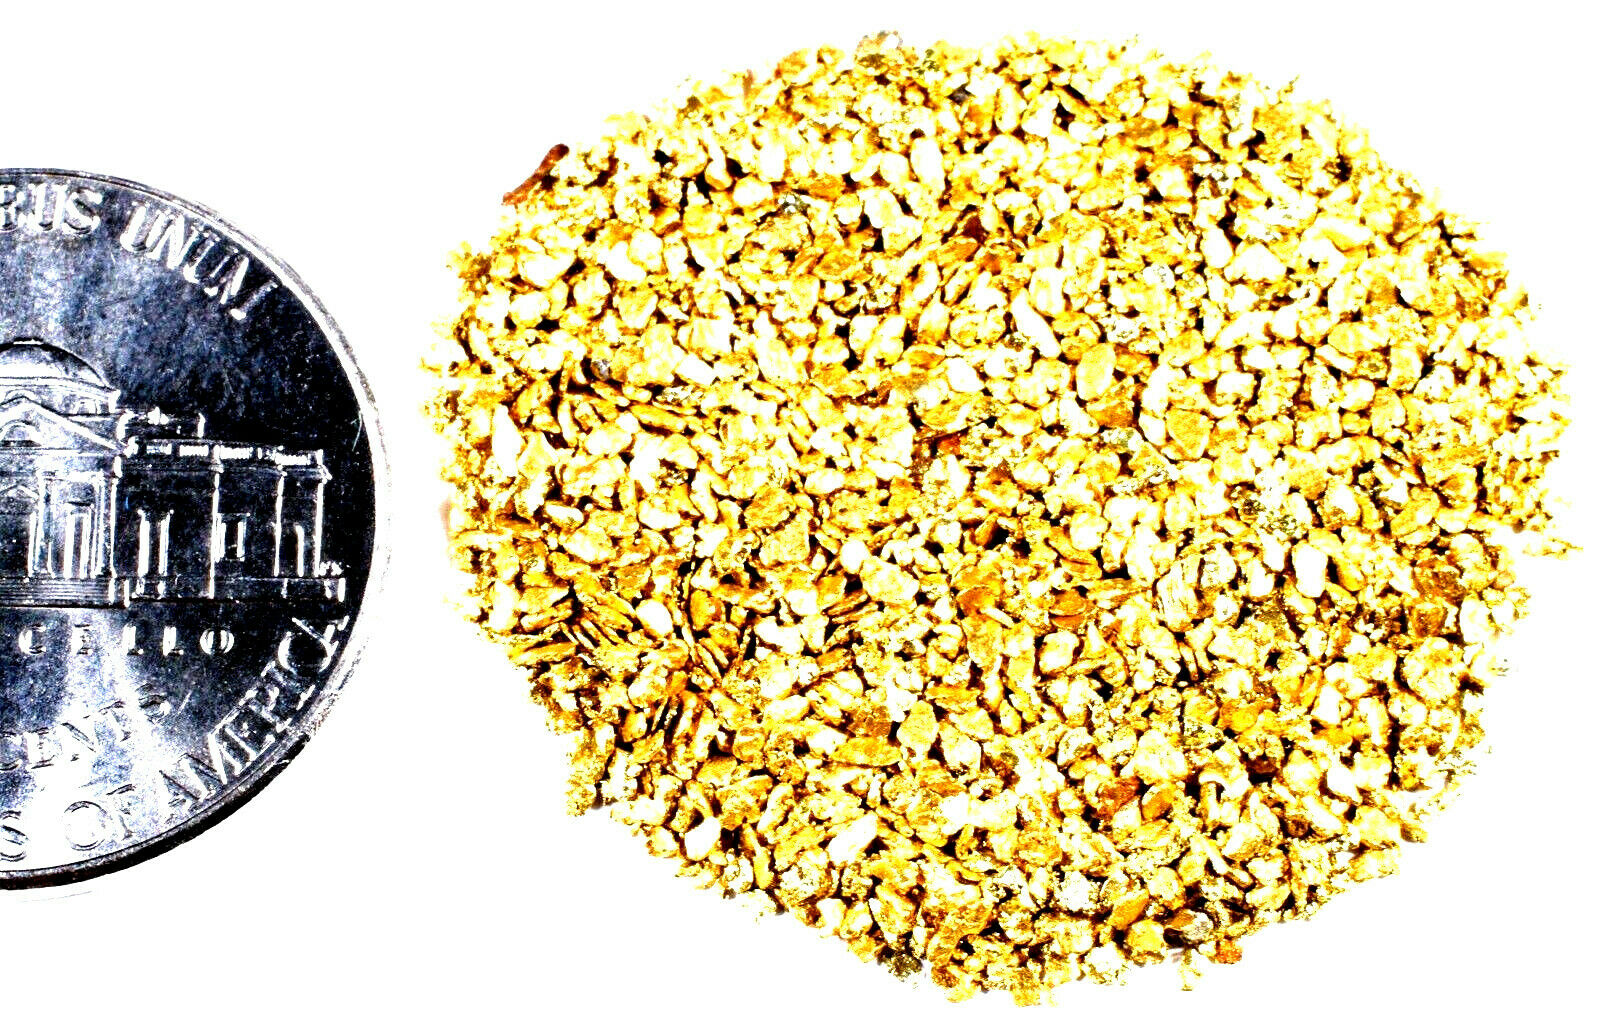 1/2 TROY OZ ALASKAN YUKON BC NATURAL PURE GOLD NUGGETS #30 MESH - Liquidbullion